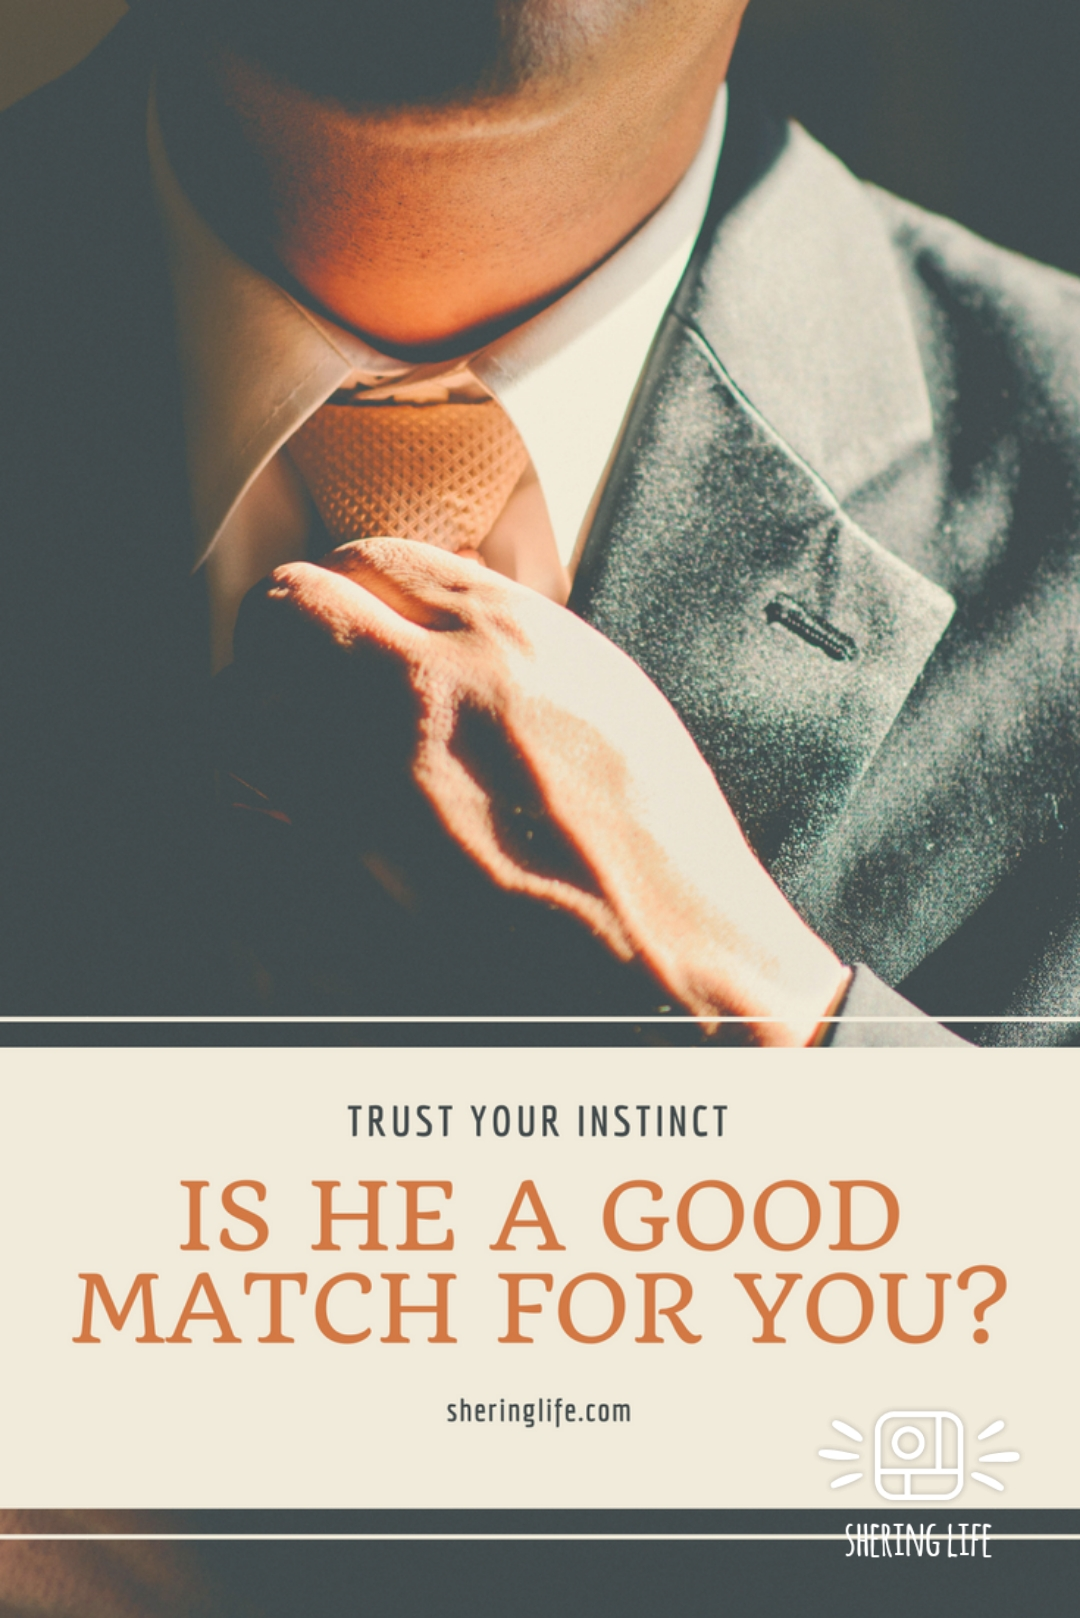 5 Ways To Tell If He Is A Good Match